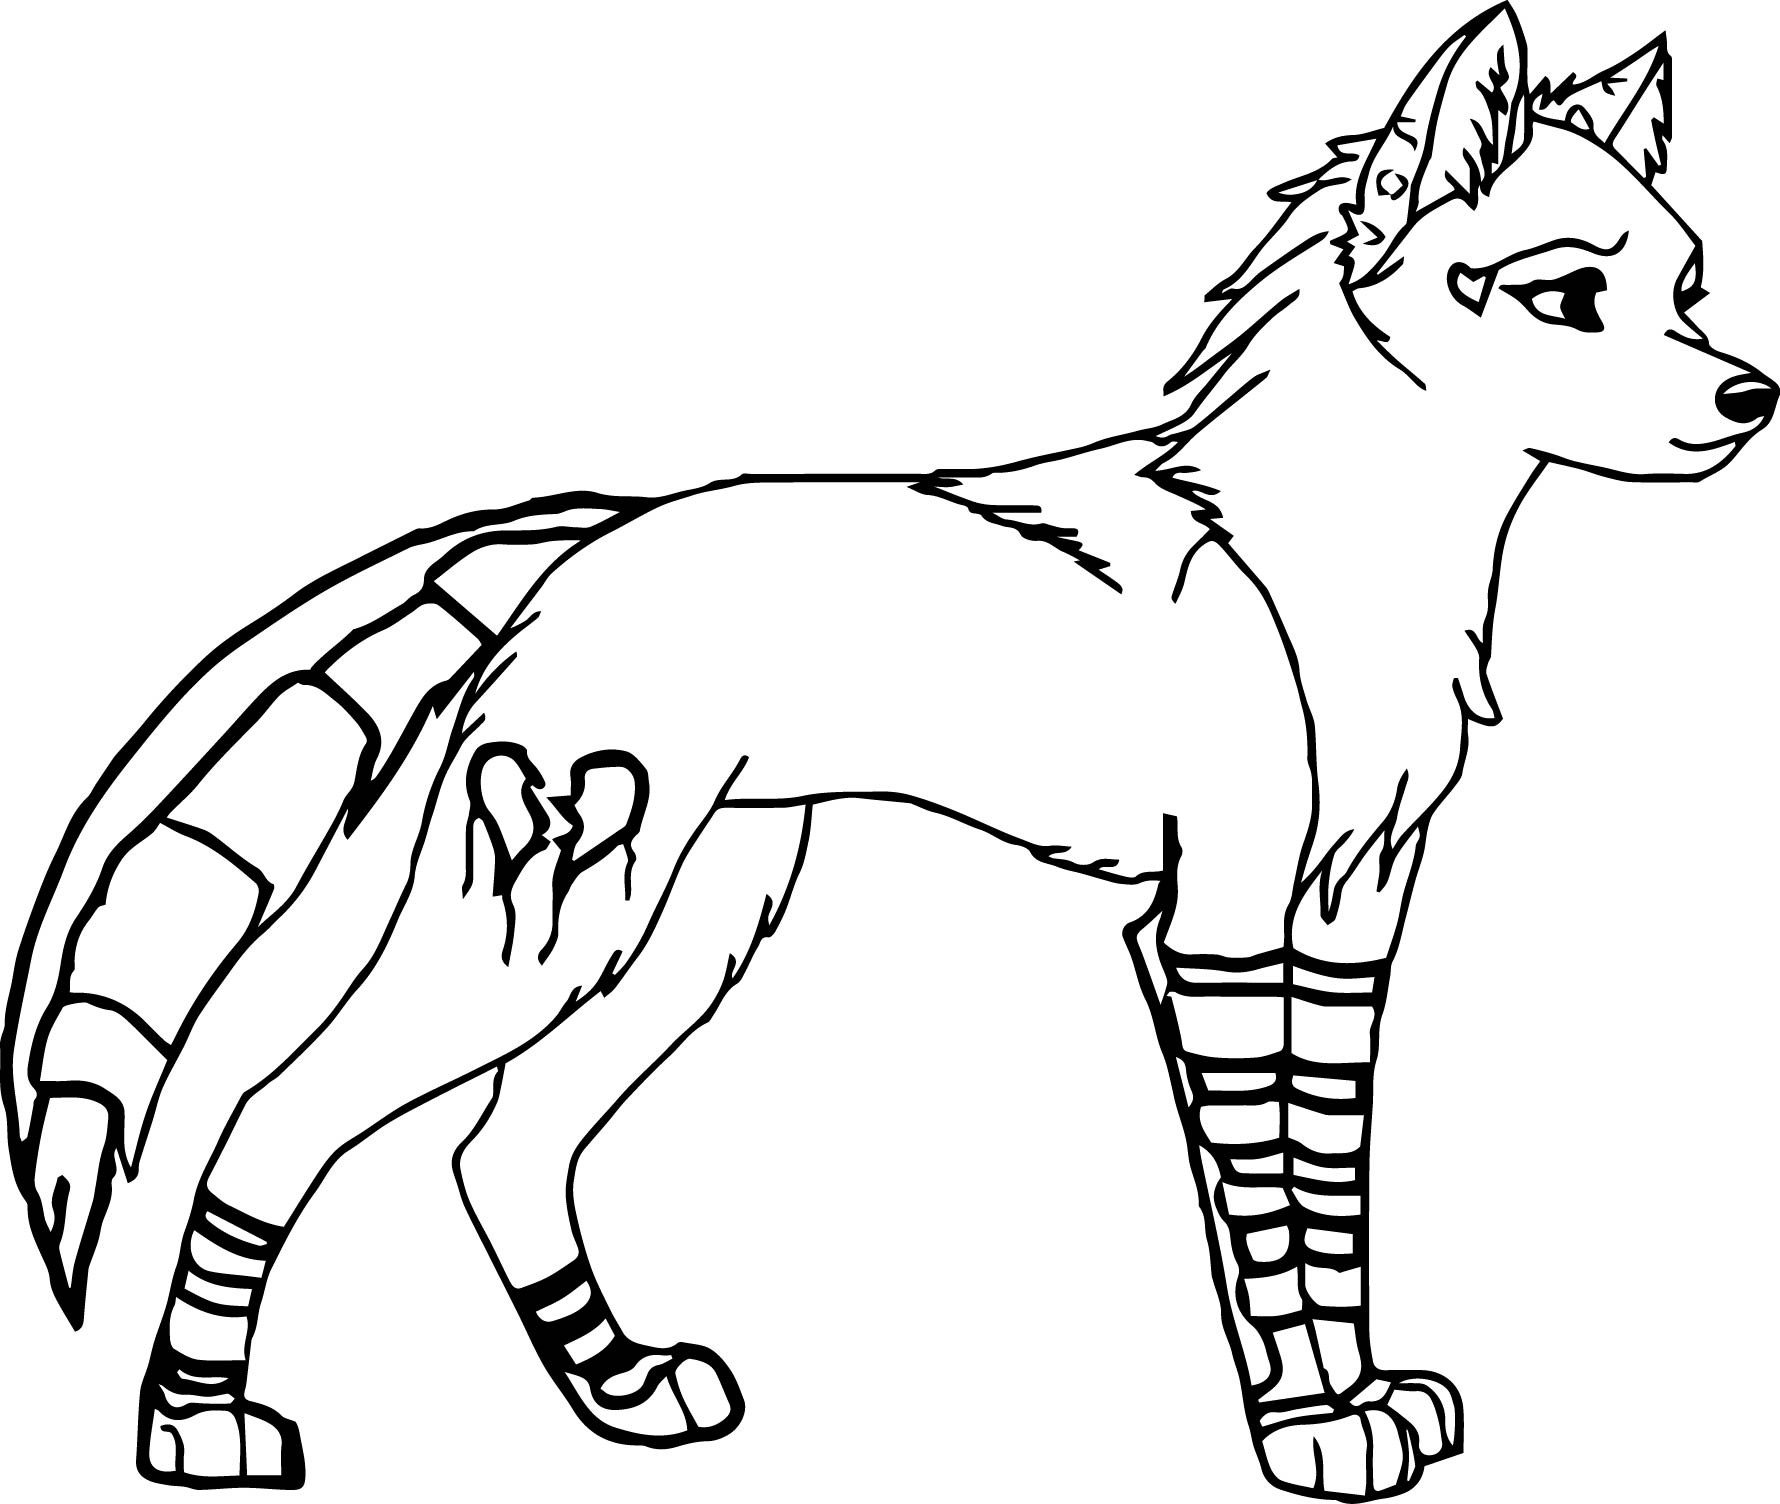 Wolf Coloring Pages  to Print 17f - Free For Children